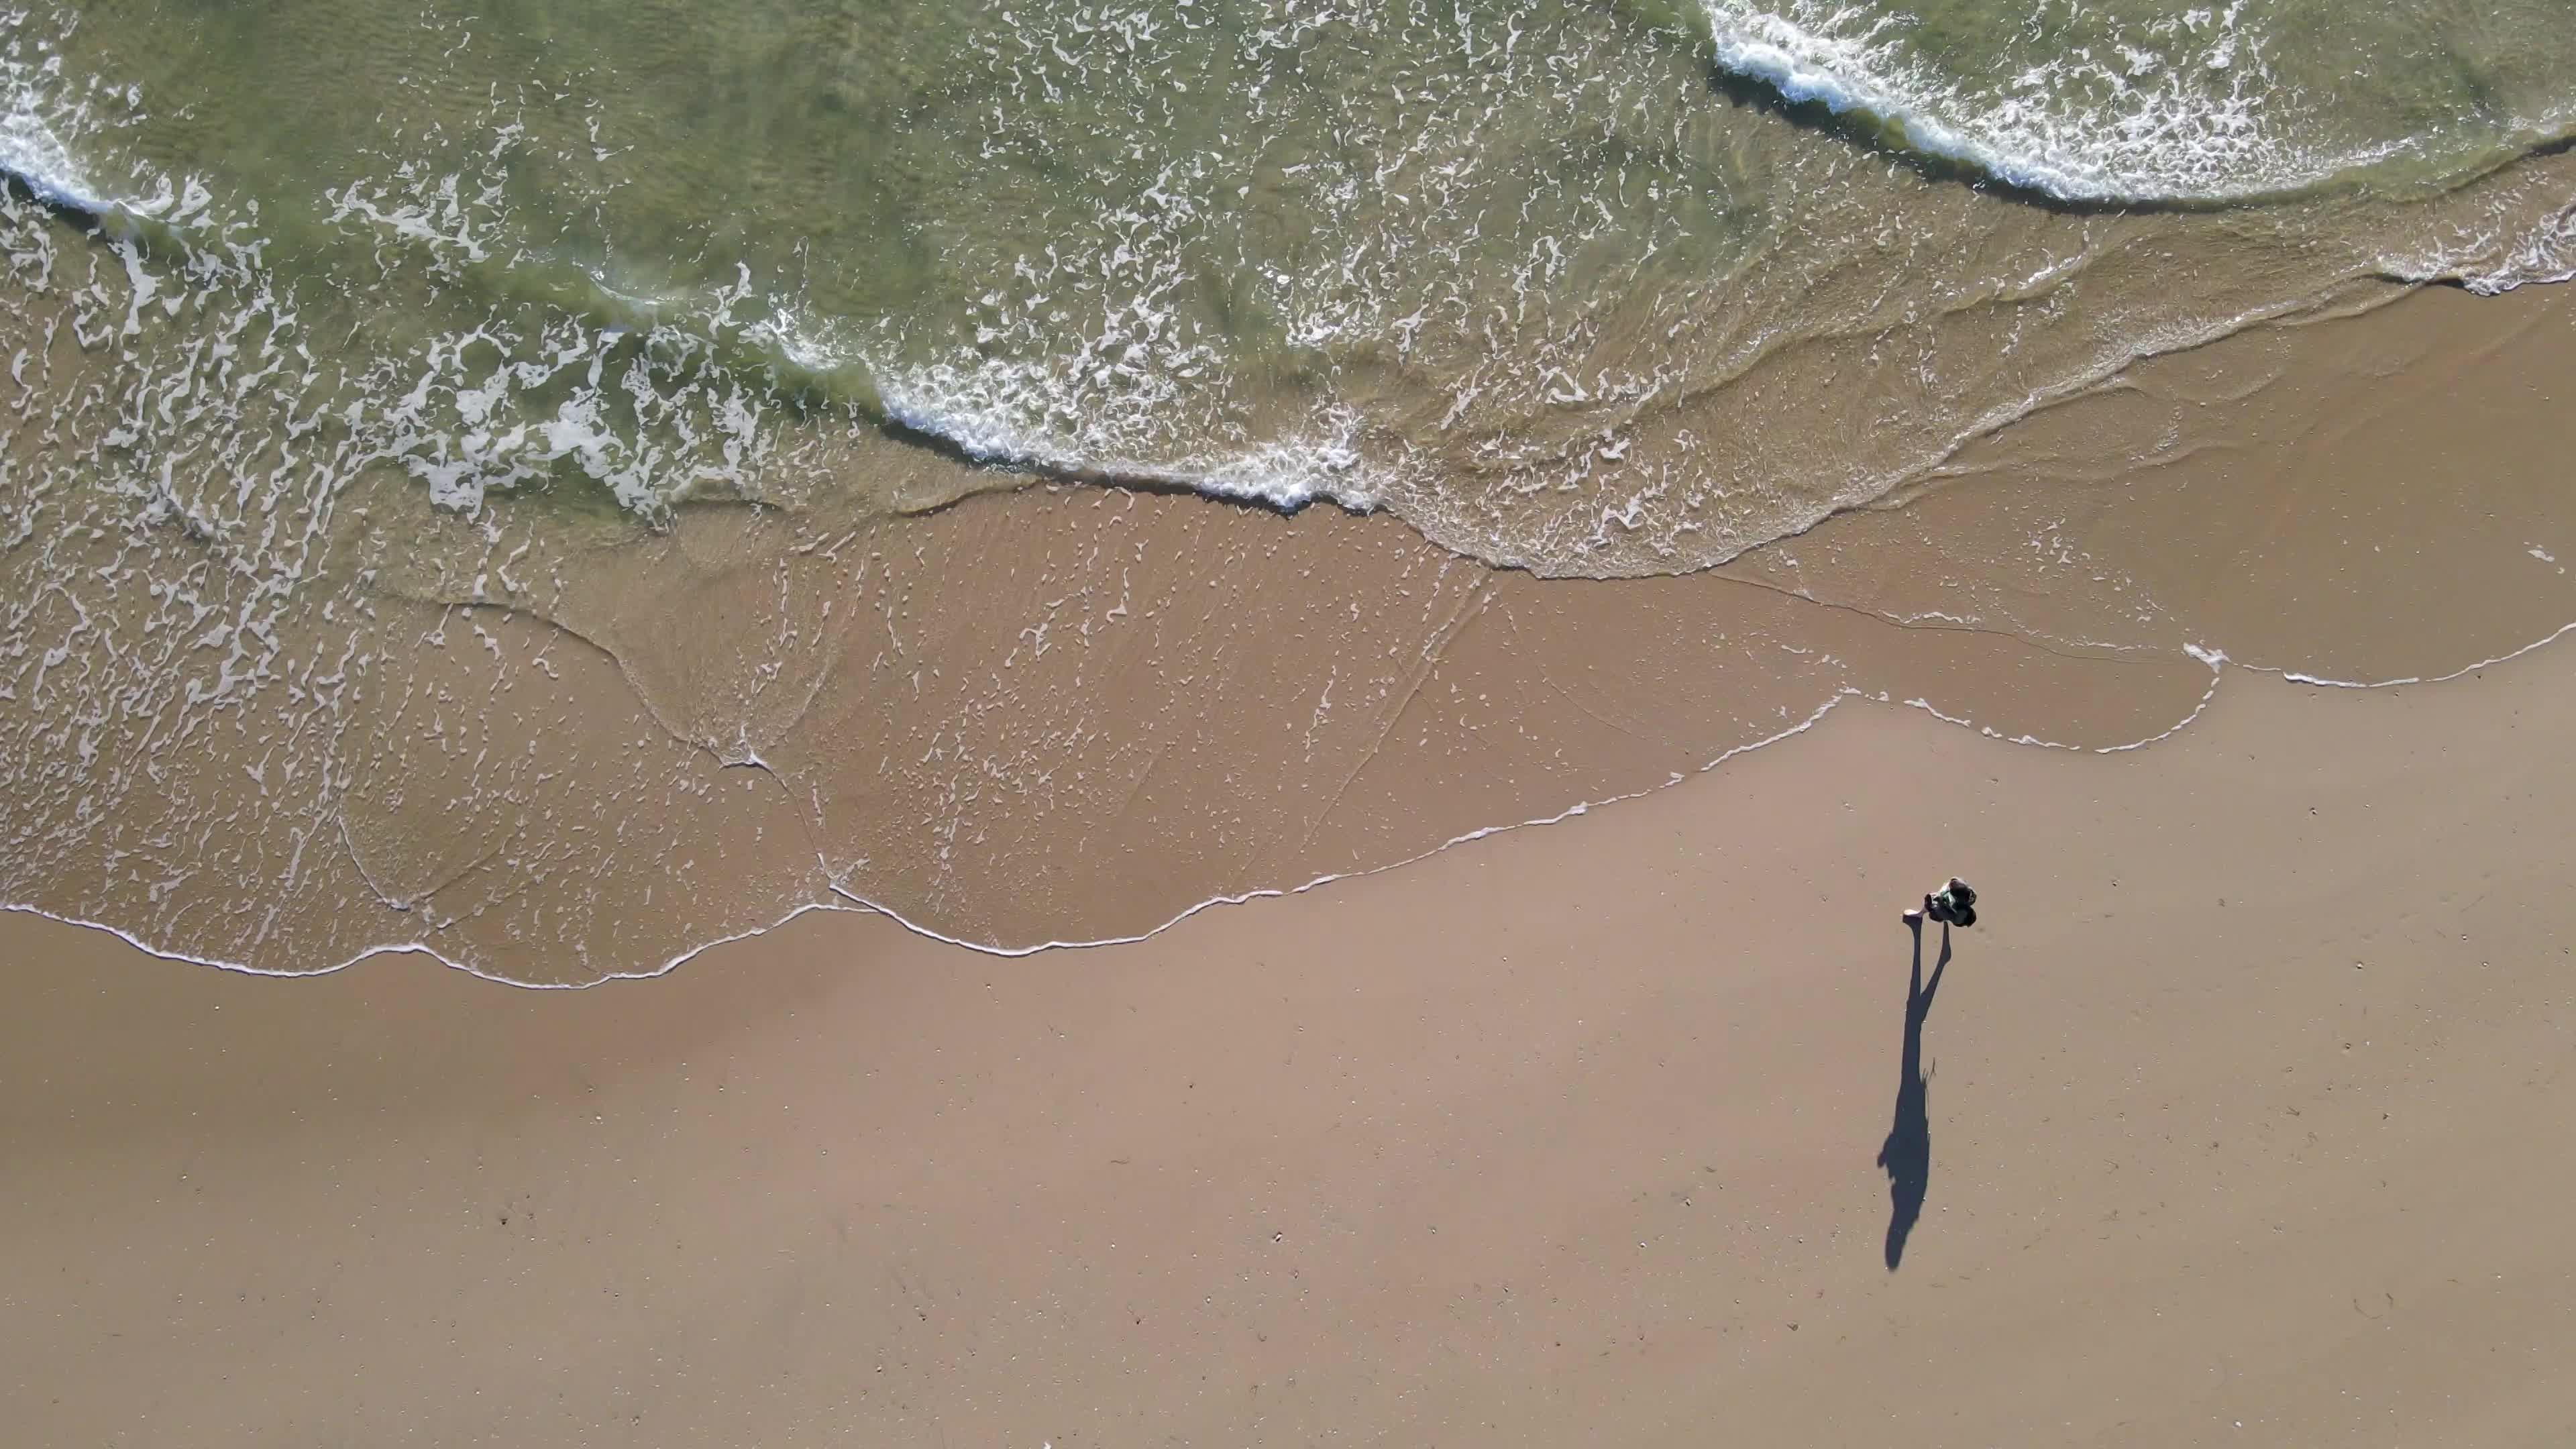 Aerial view of person walking along coast